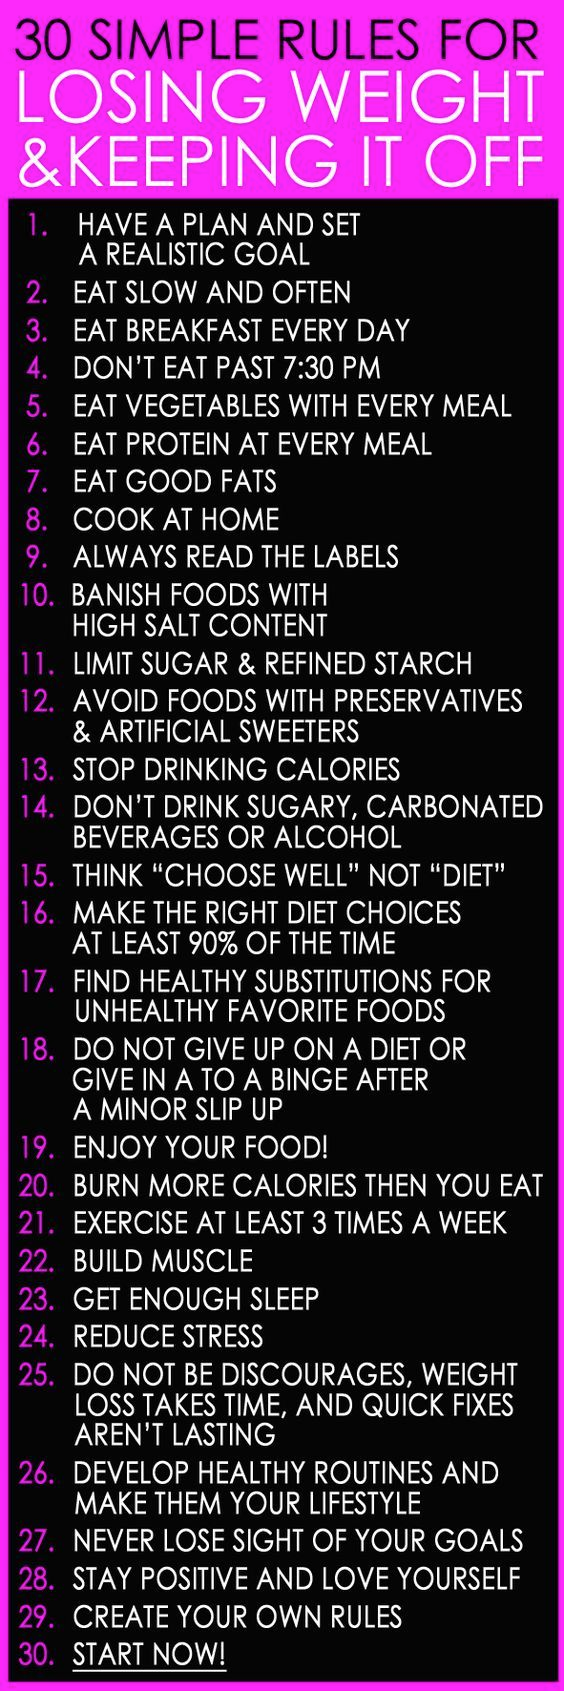 How to reduce trans fats in diet